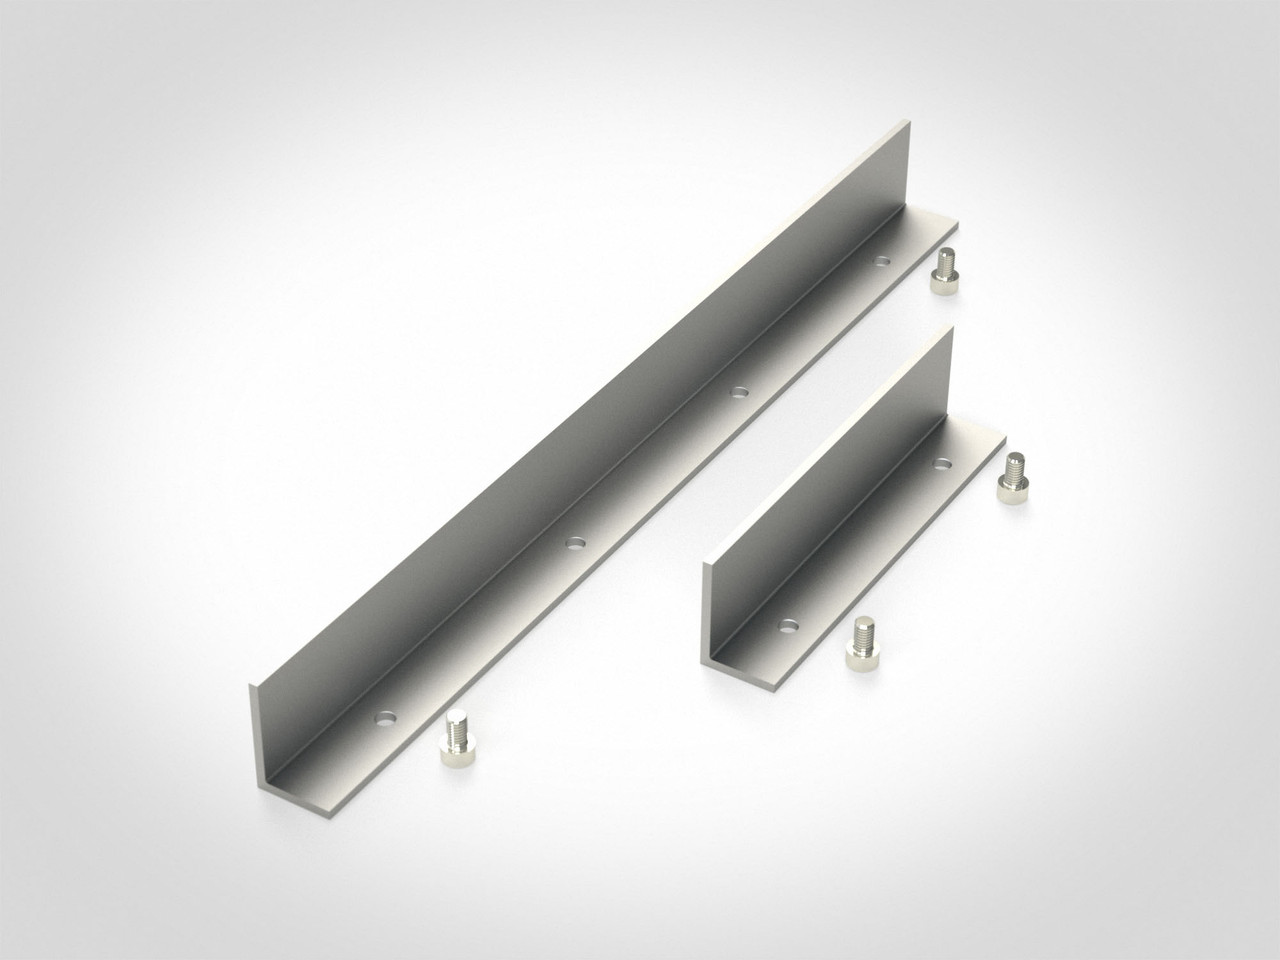 Extend the usefulness of your guide rail square or precision triangle with these angle accessories.